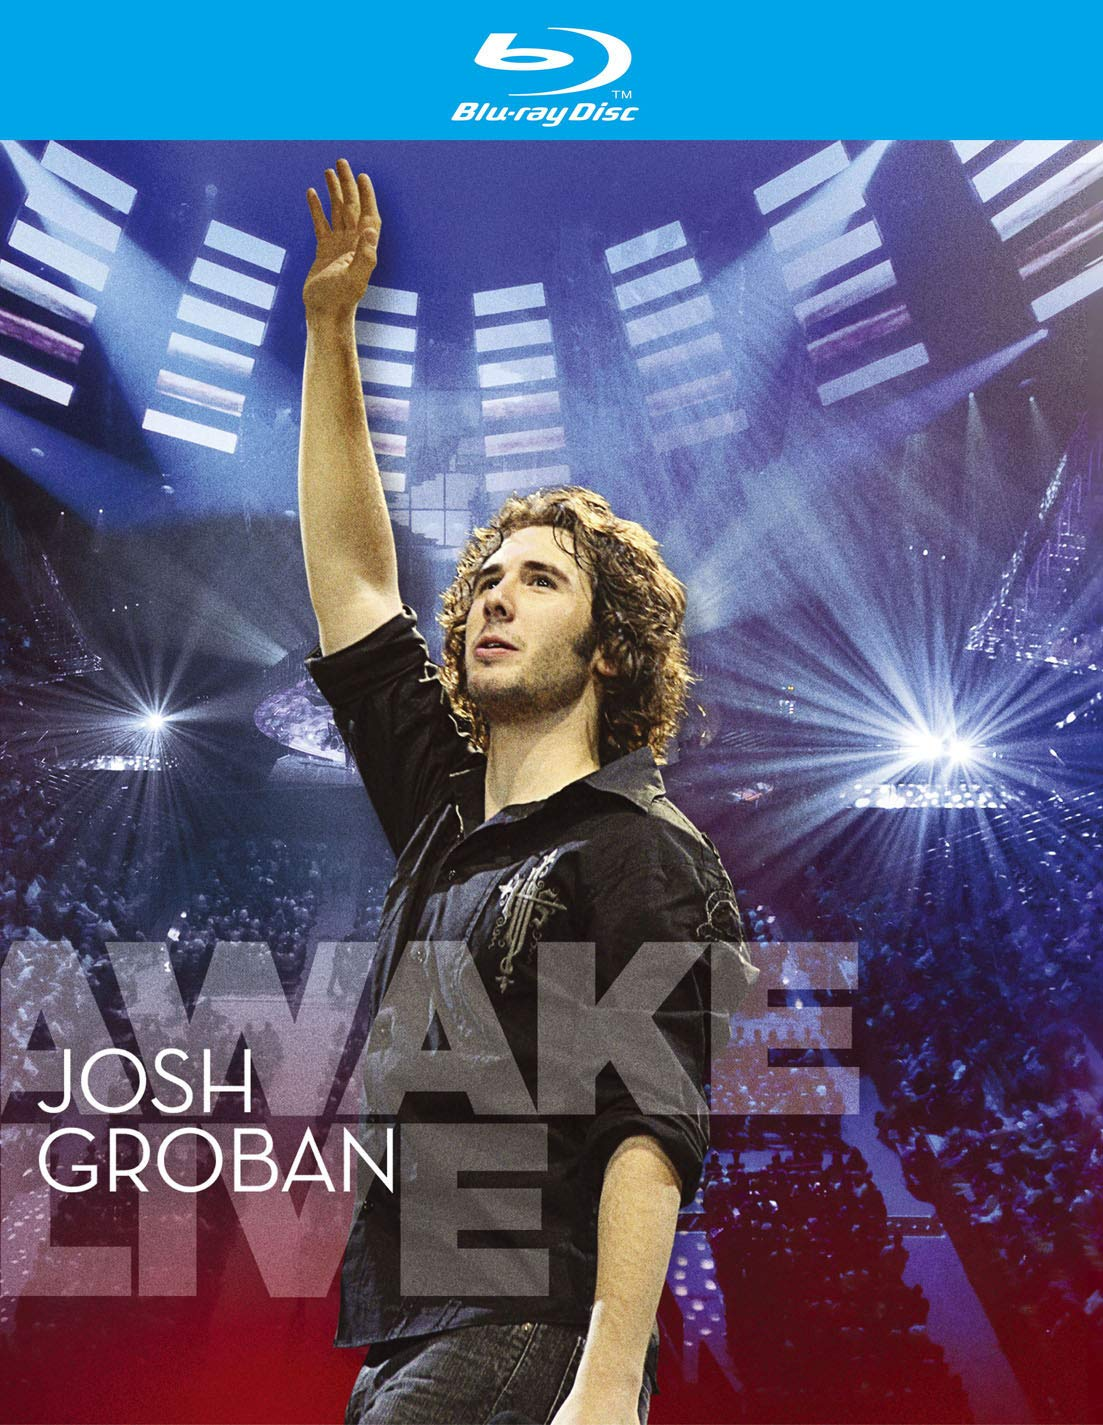 Josh Groban: Awake - Live [Blu-ray] Reprise / Wea Rock Concerts English